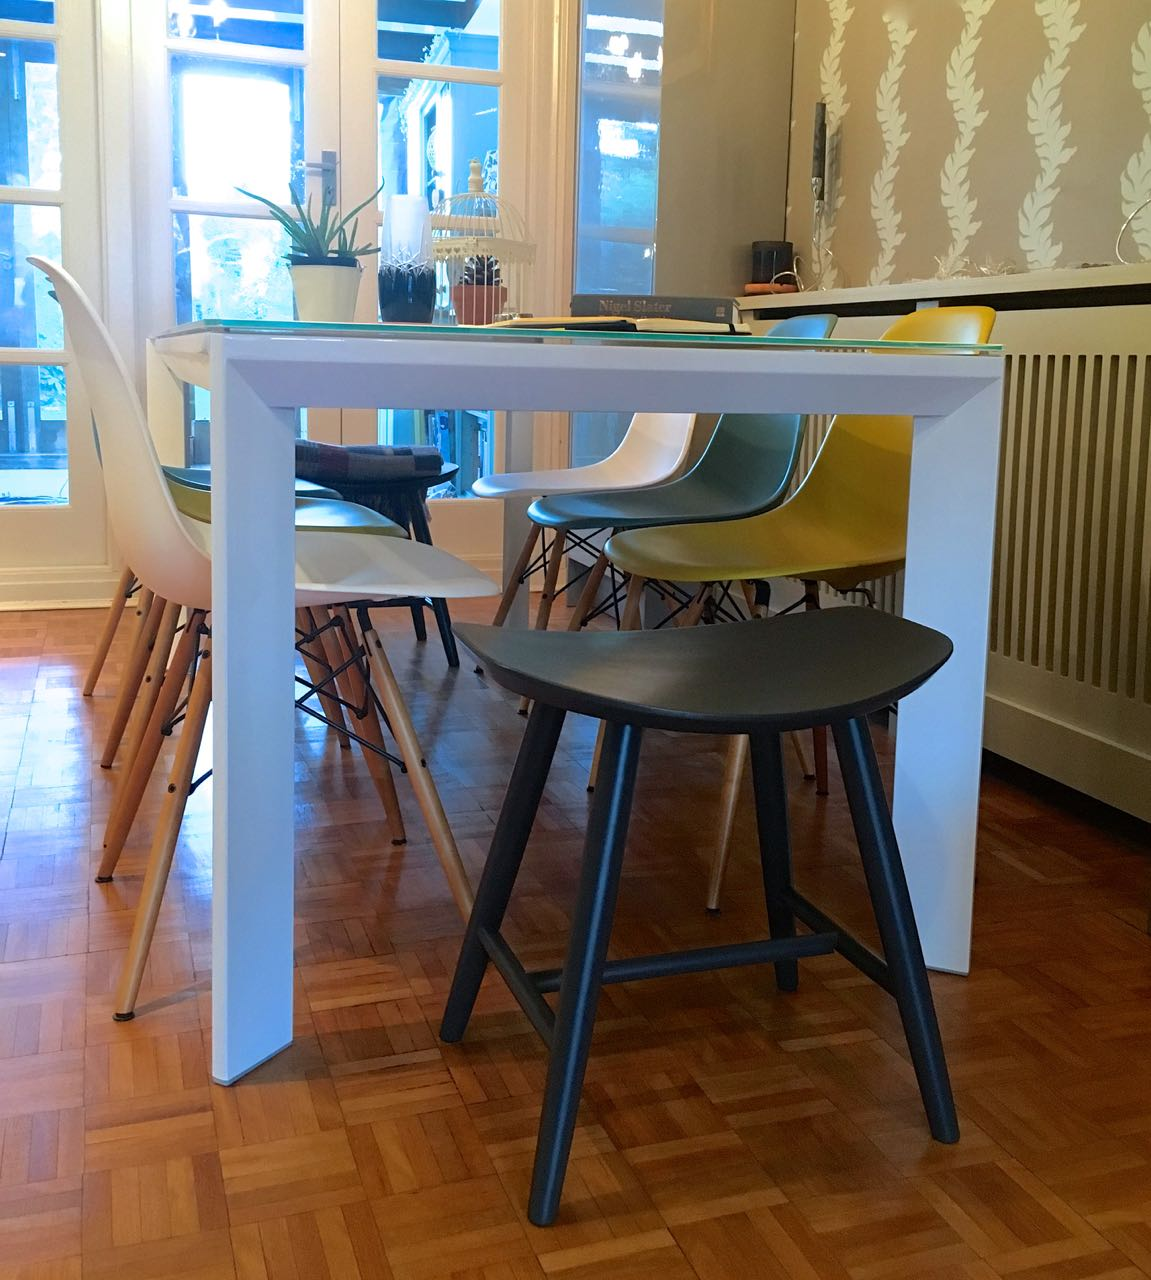 With the table extended the stools are better at each end